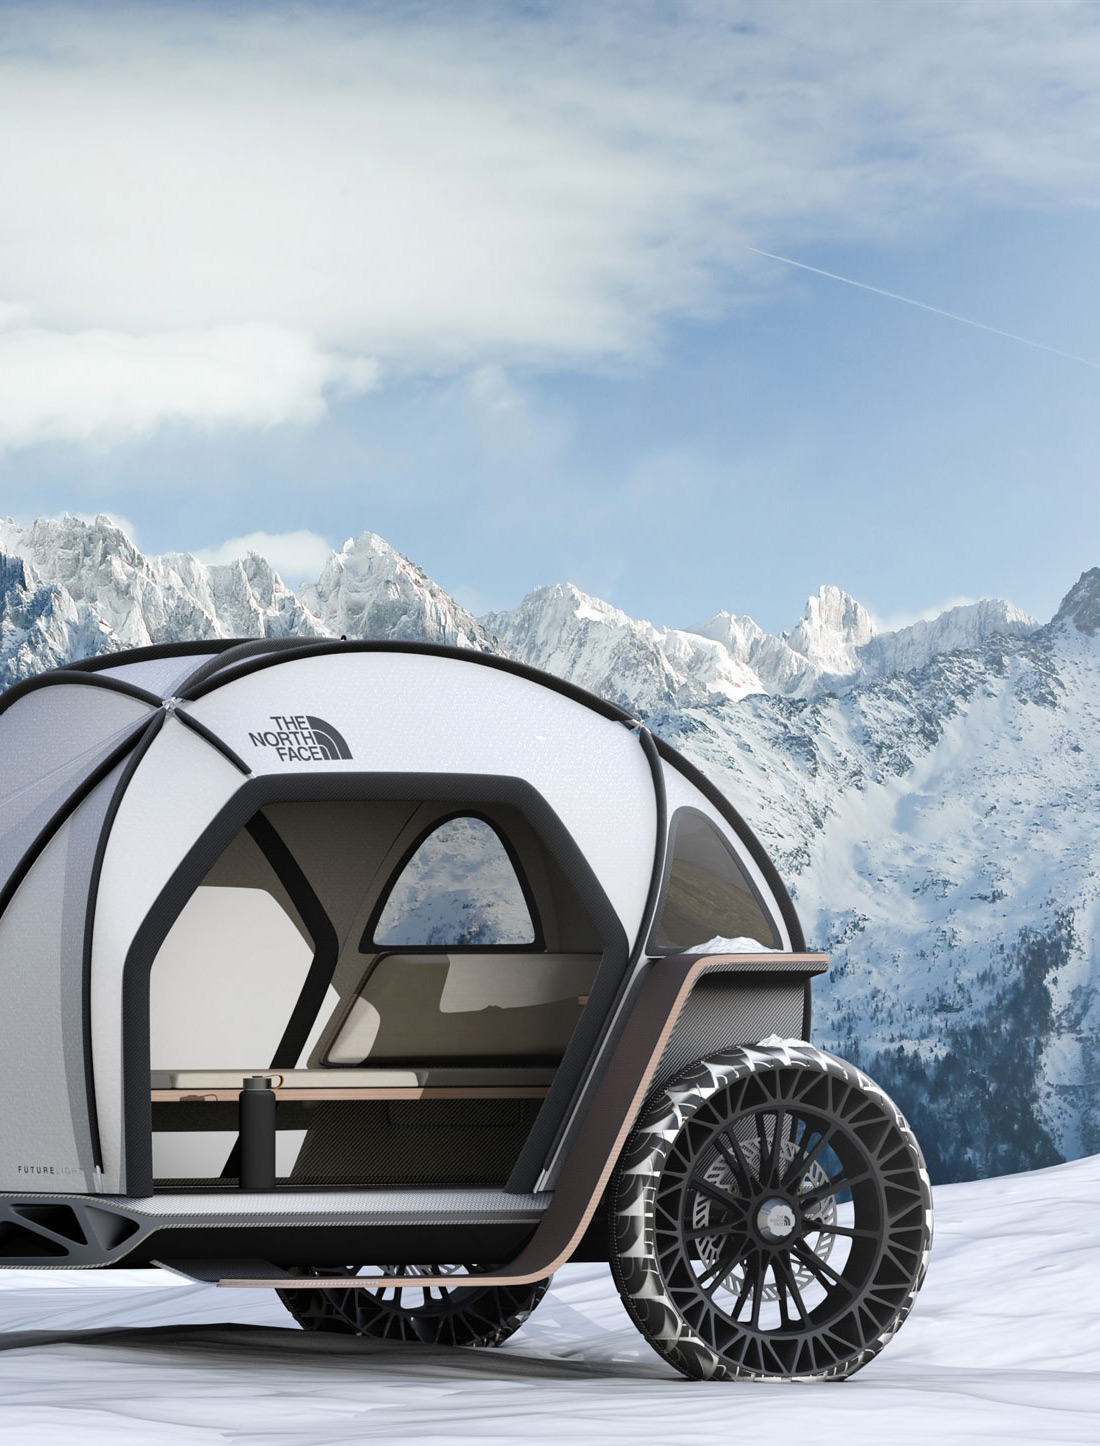 north face camper in the snowy mountains